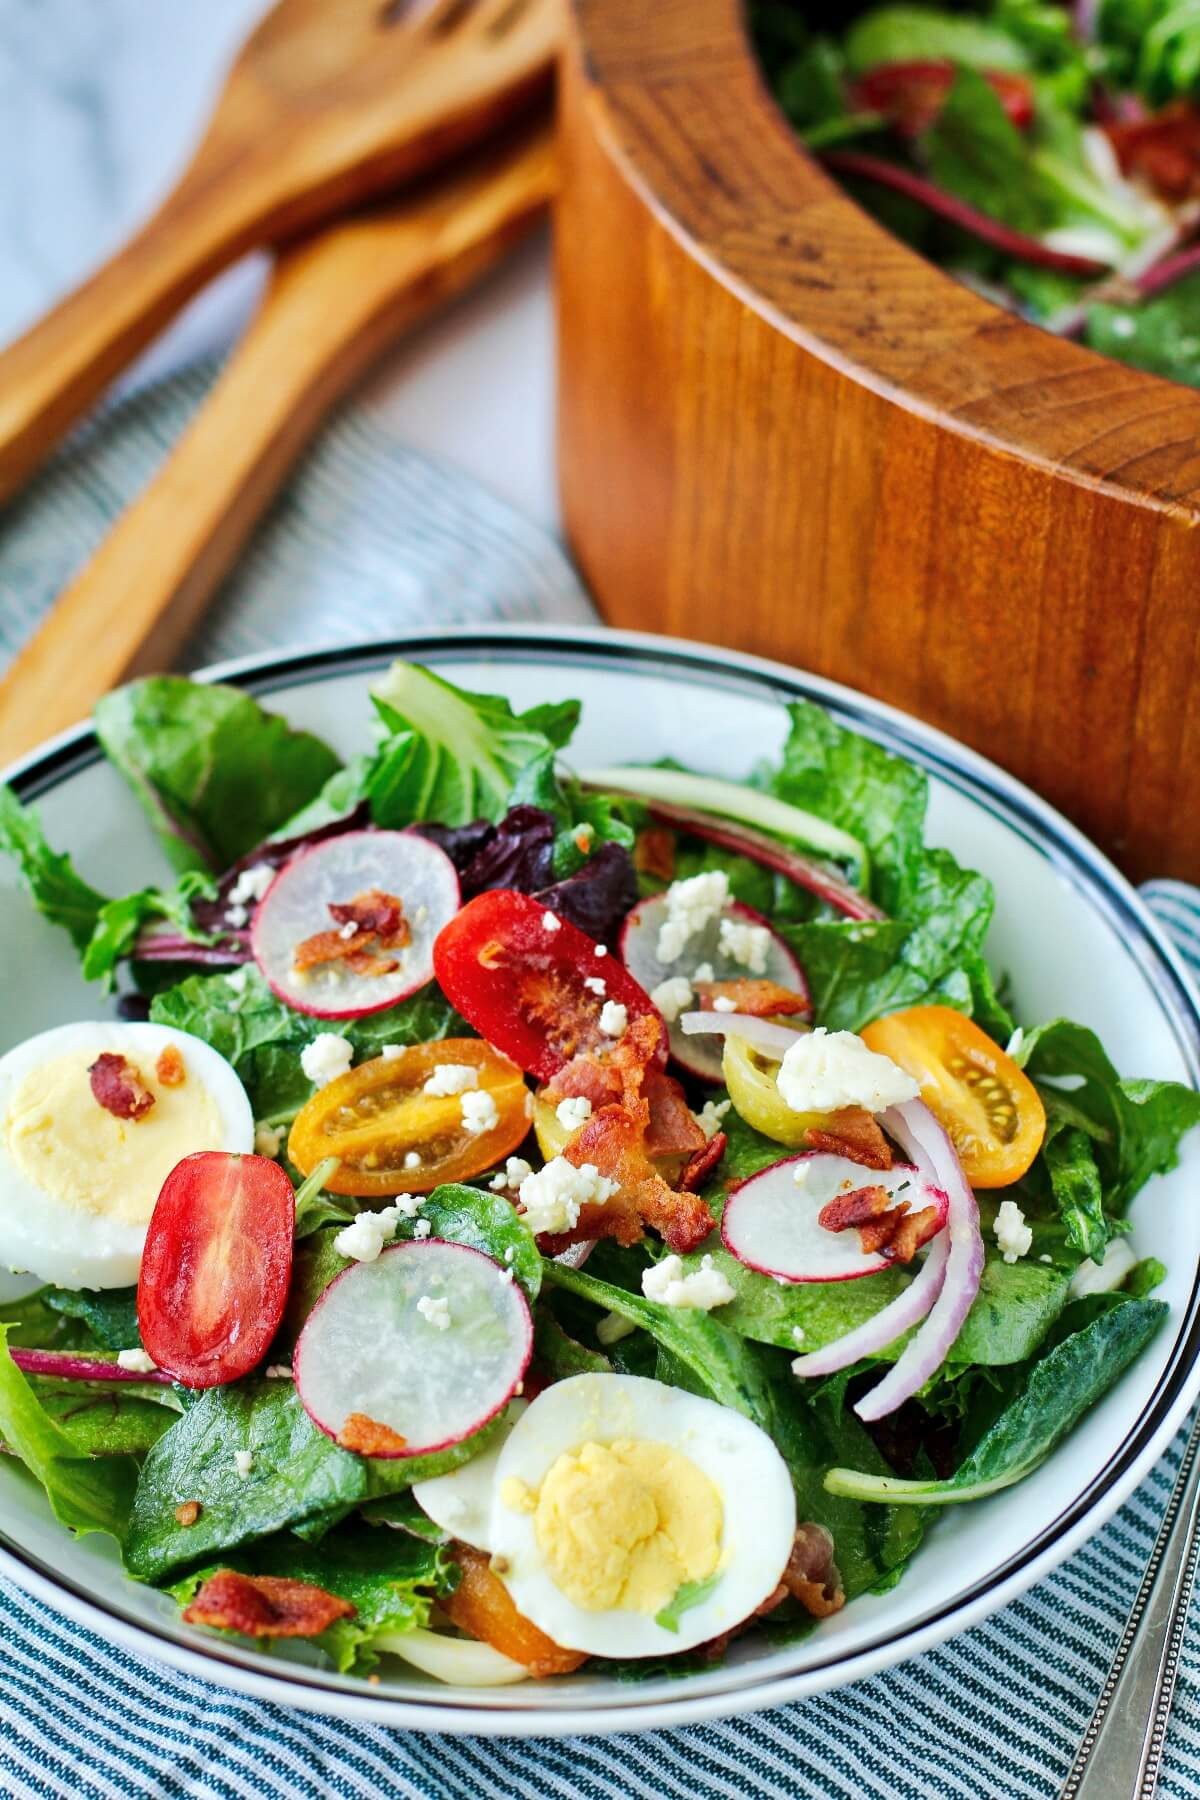 Wilted Mixed Green Salad with Bacon Dressing